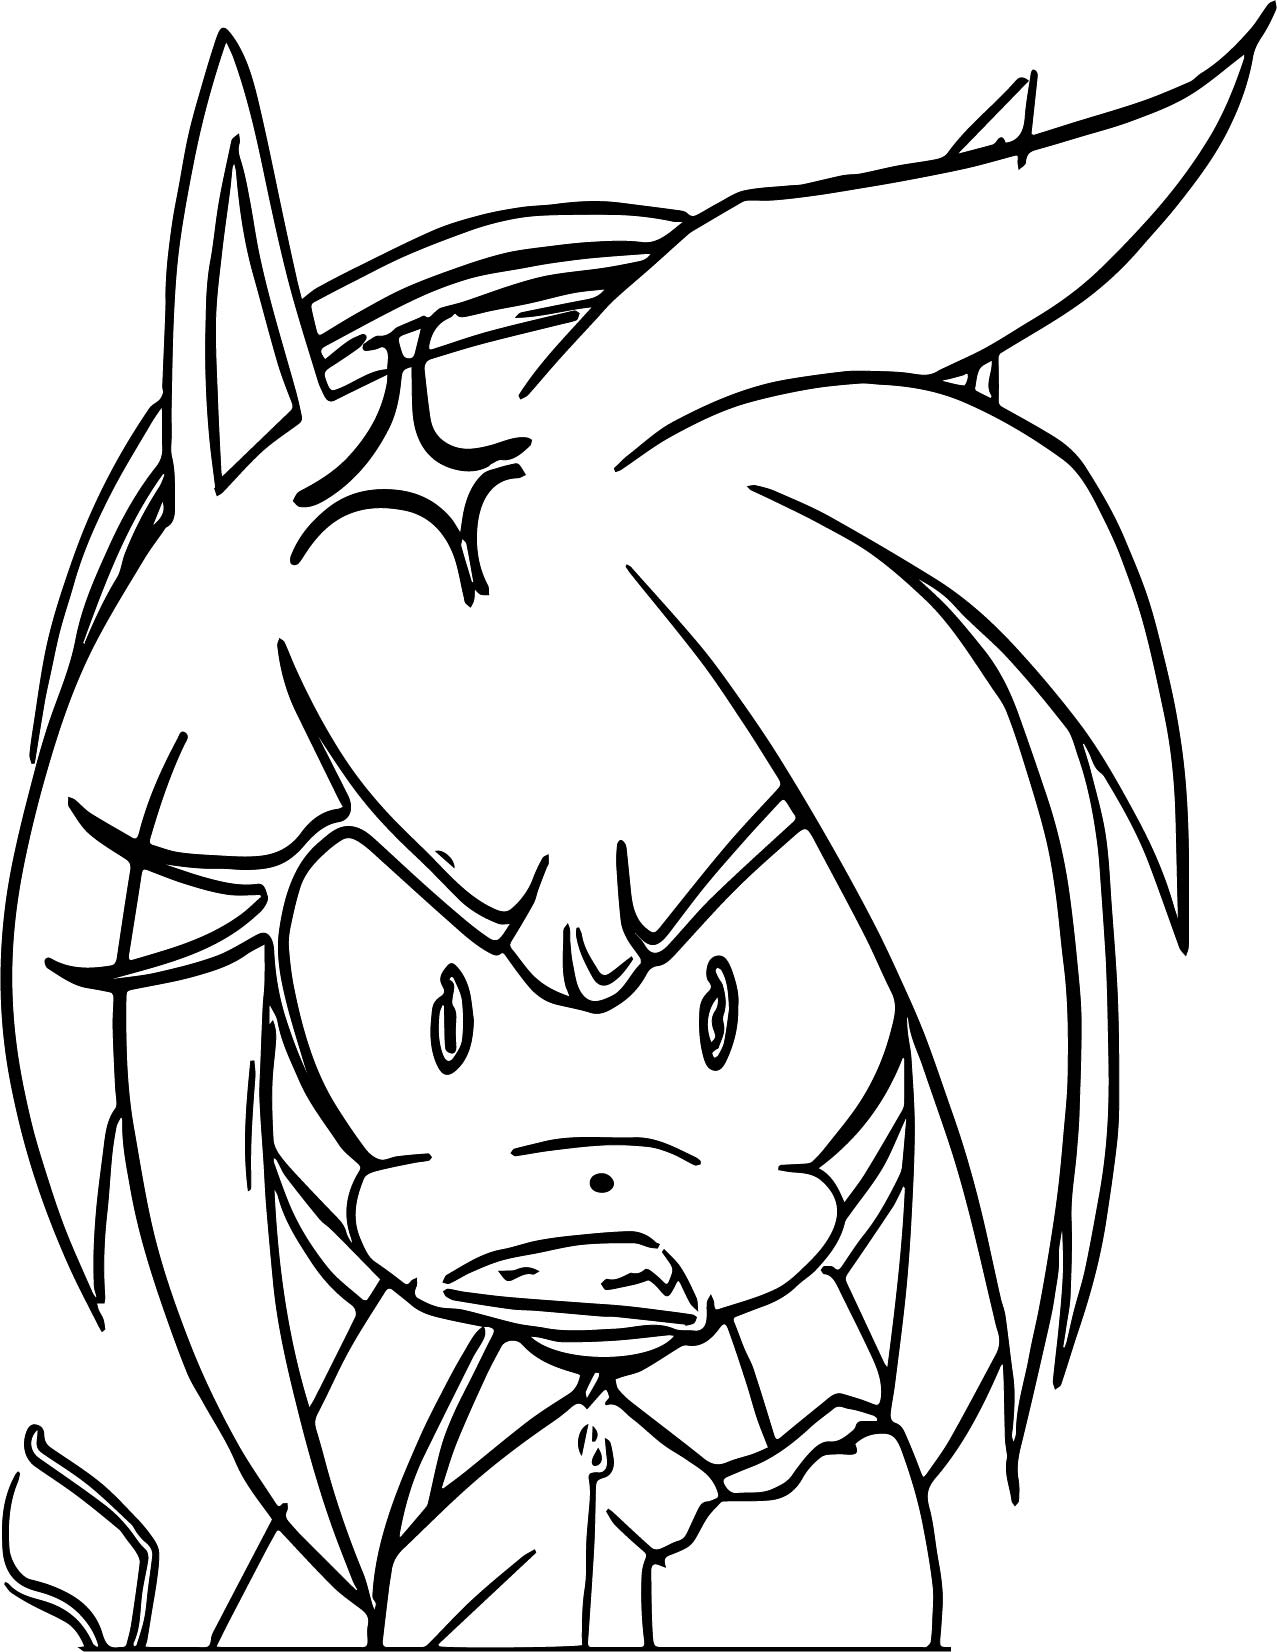 Bitter Amy Rose Coloring Page